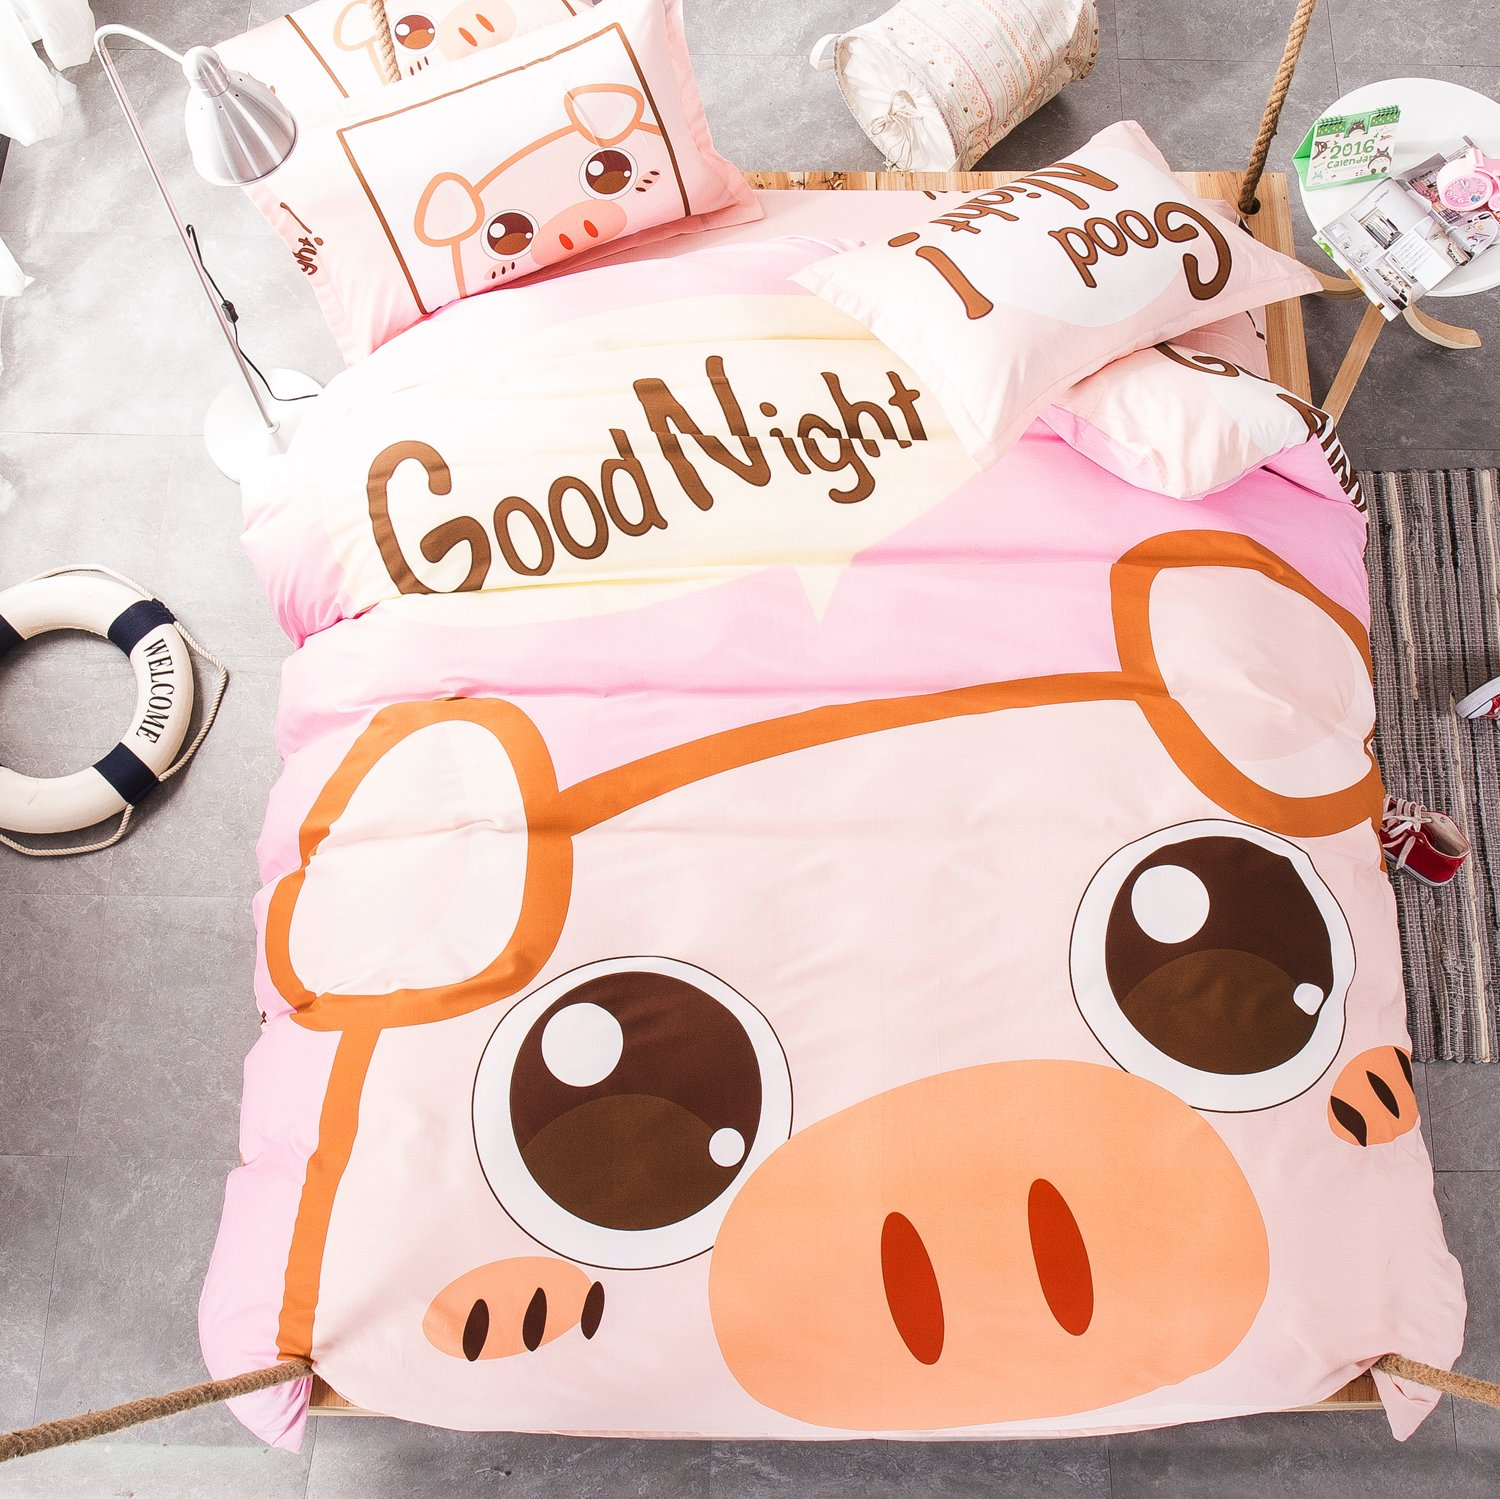 Mumgo Home Bedding Sets for Kids 100% Cotton Cute Cartoon Animal Good Night Print Duvet Cover Set Full/Queen Size 4 Piece -Not Include Comforter (Cute Pig) by Mumgo